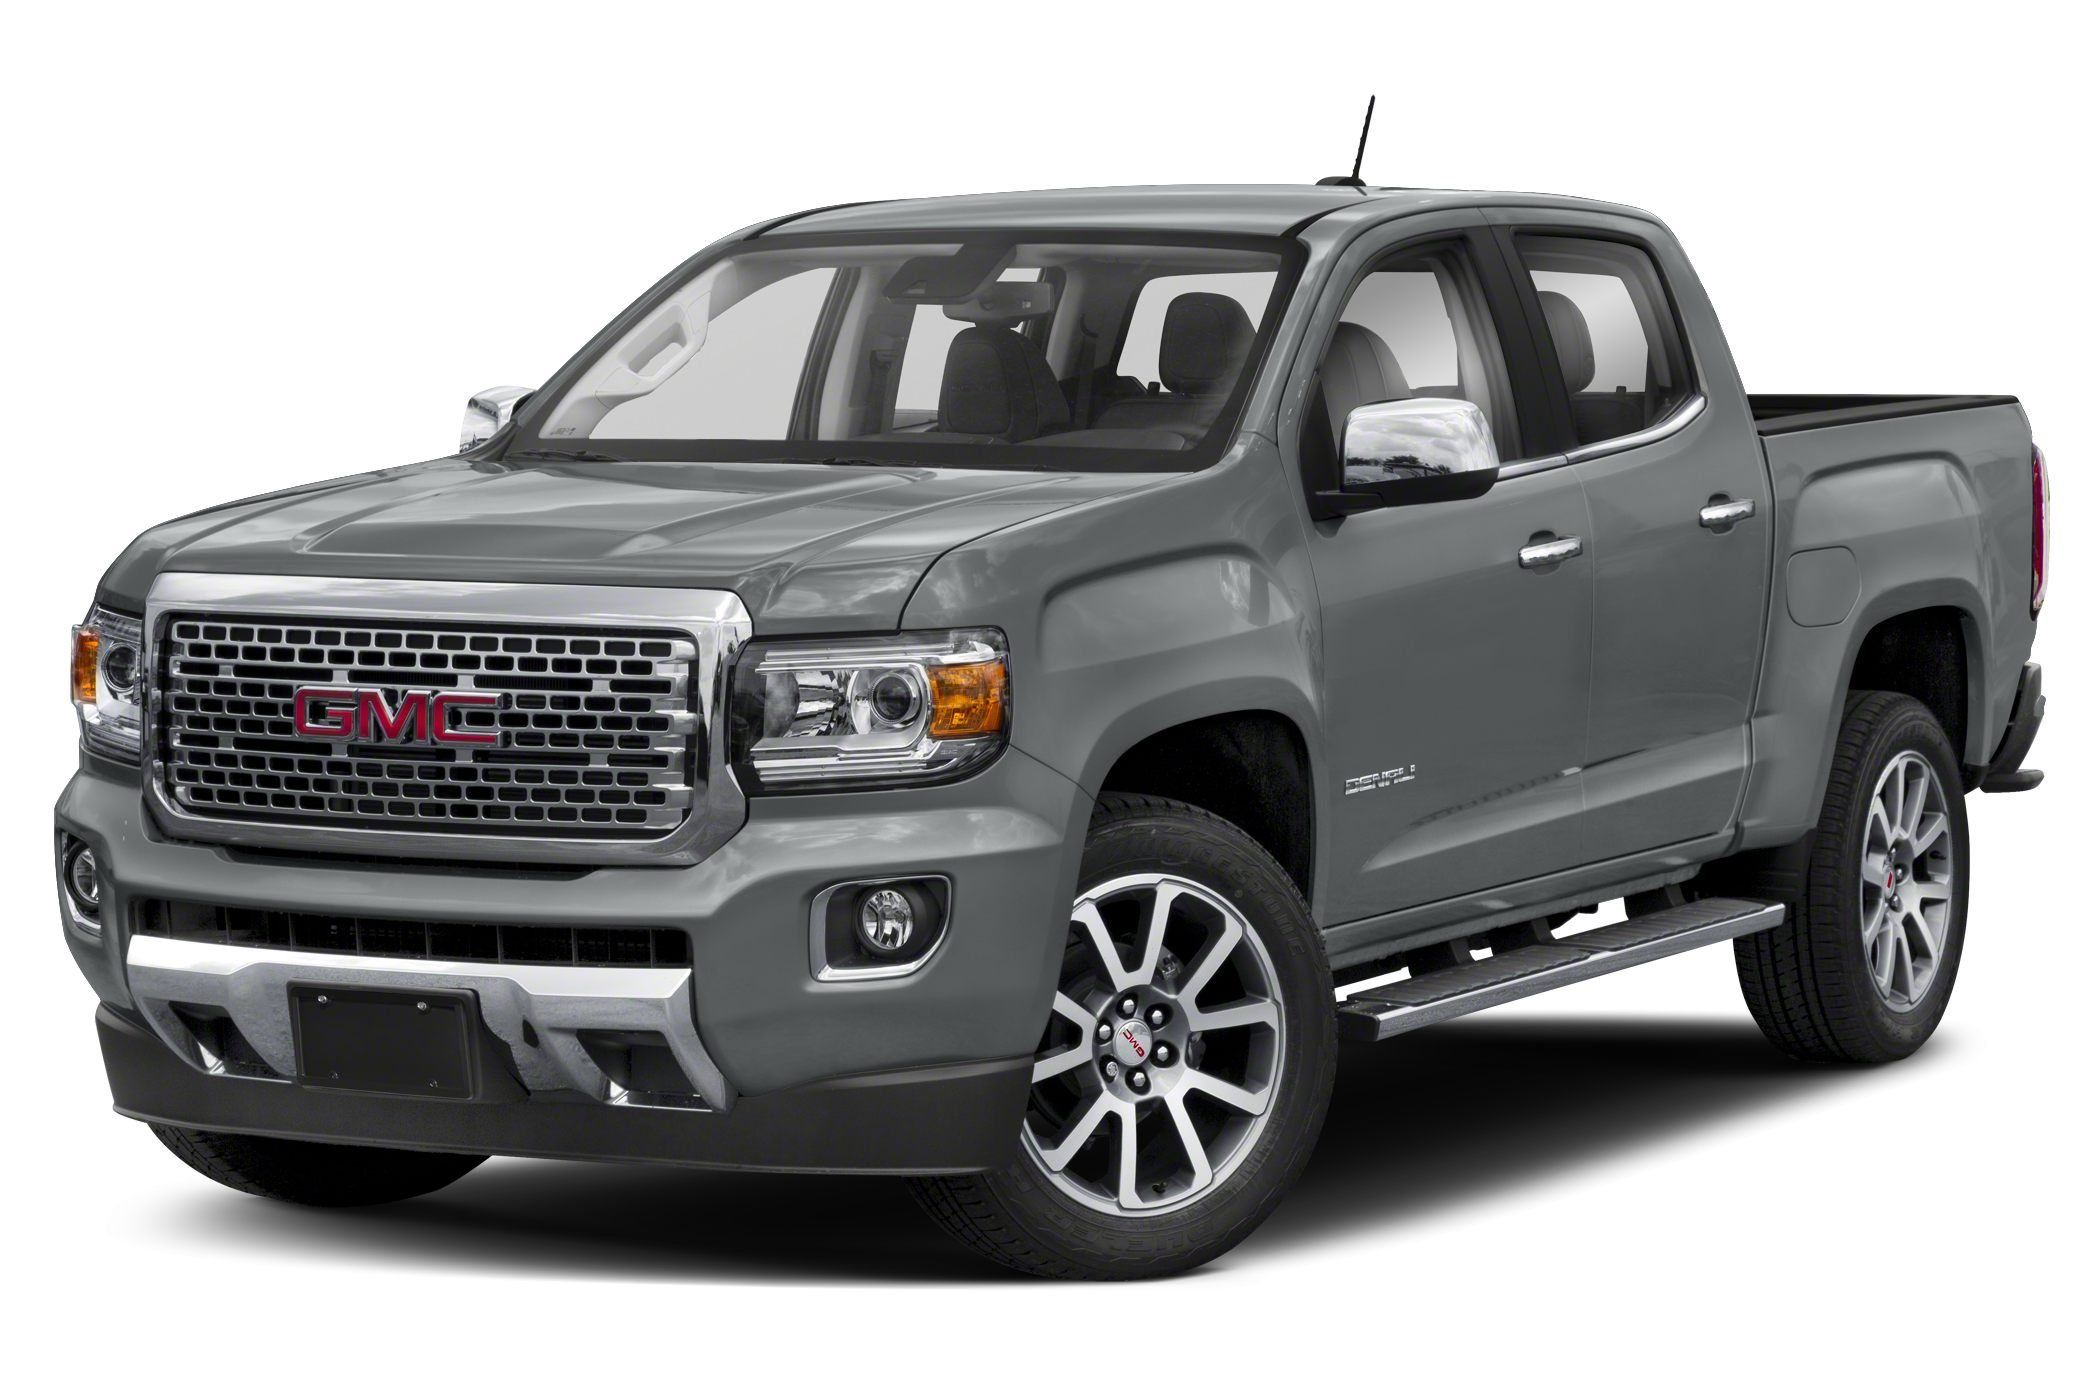 2020 Gmc Canyon Redesign And Concept Em 2020